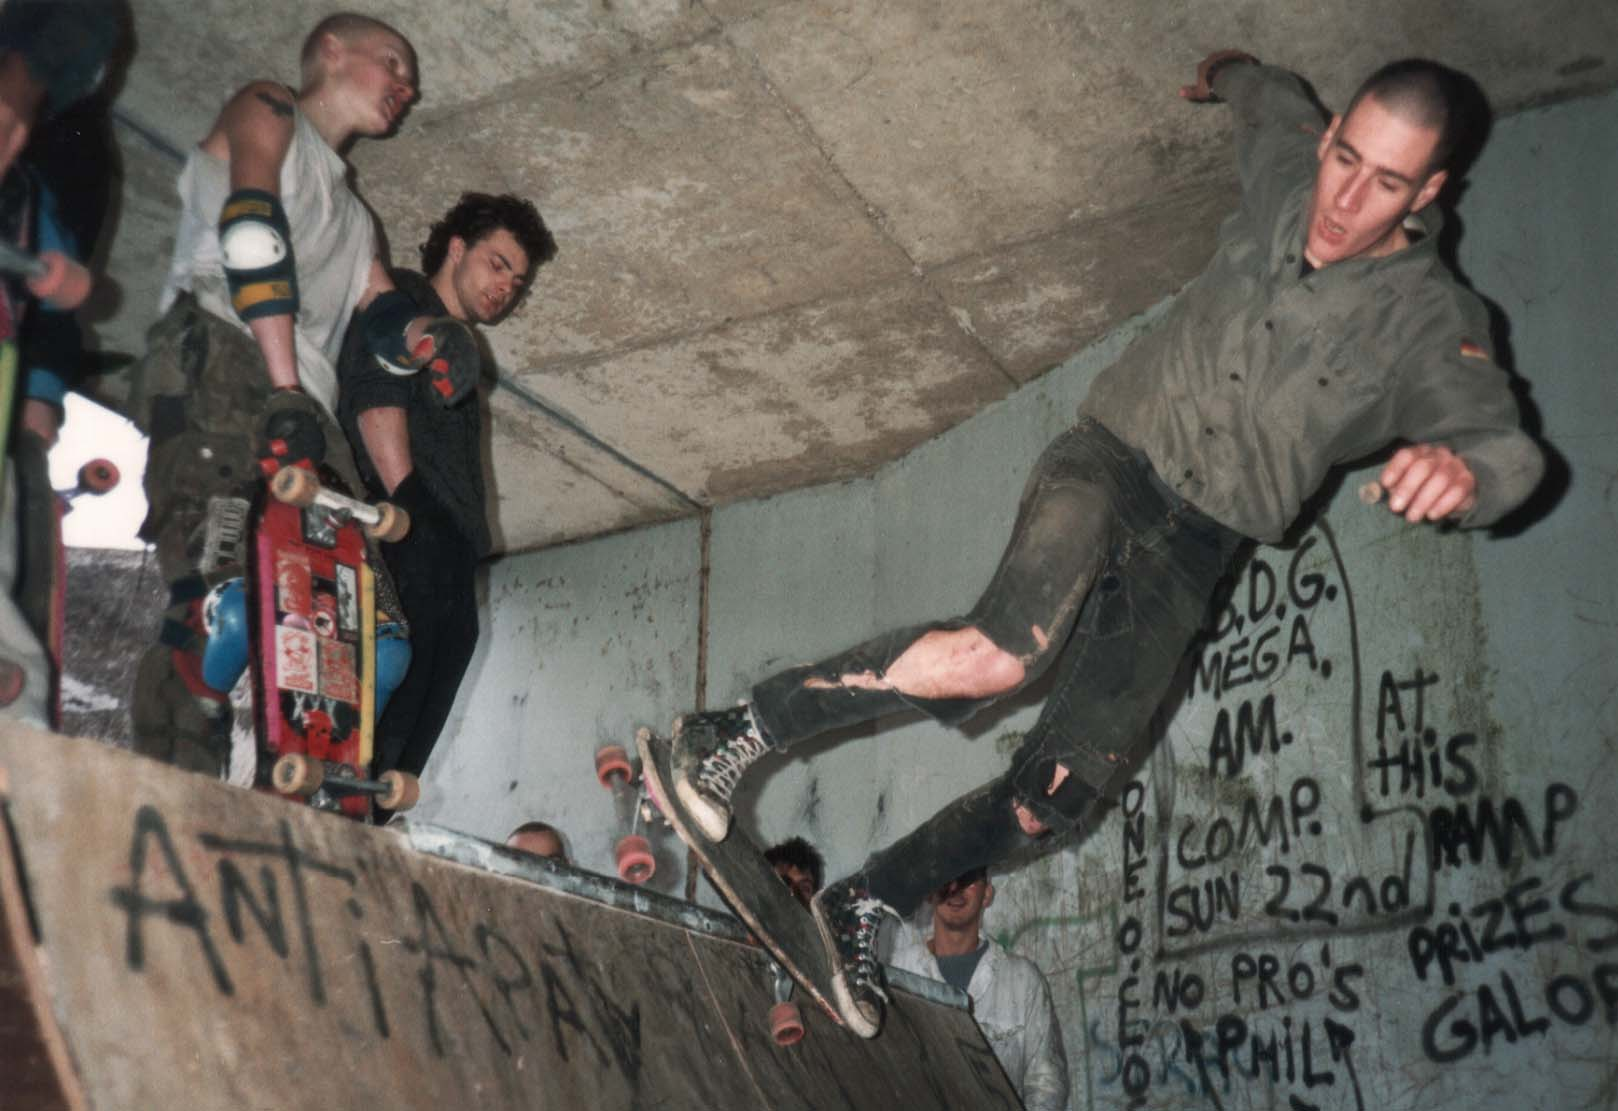 a colur photo of a young man in ripped jeans on a skateboard ramp